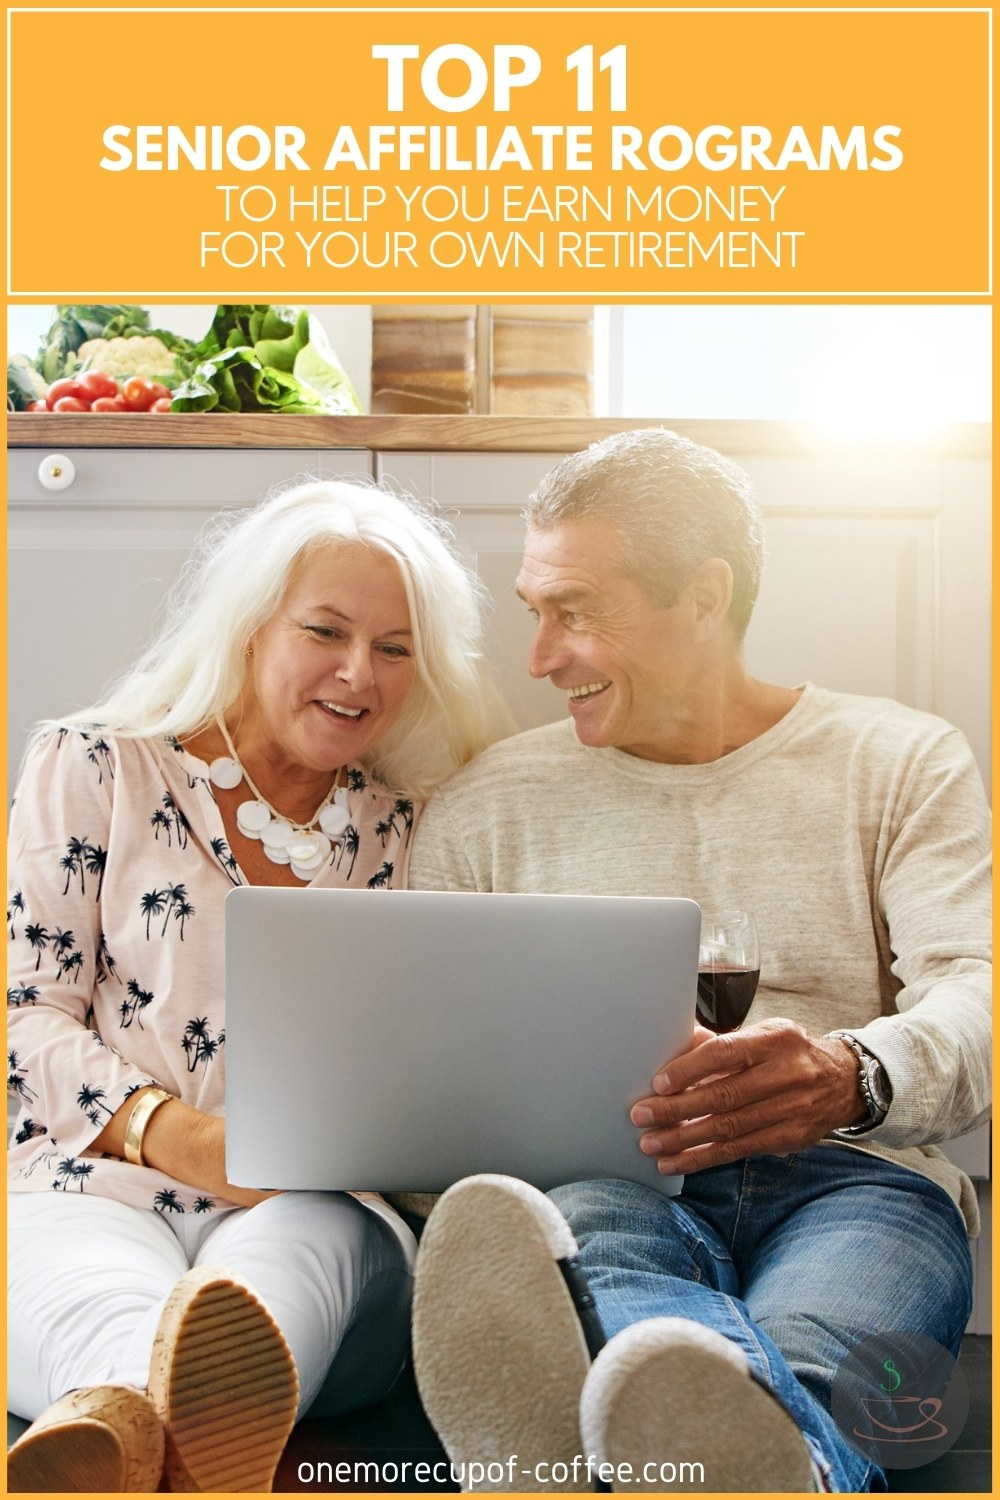 happy elderly couple sitting on the floor together with an open laptop and wine, with text overlay